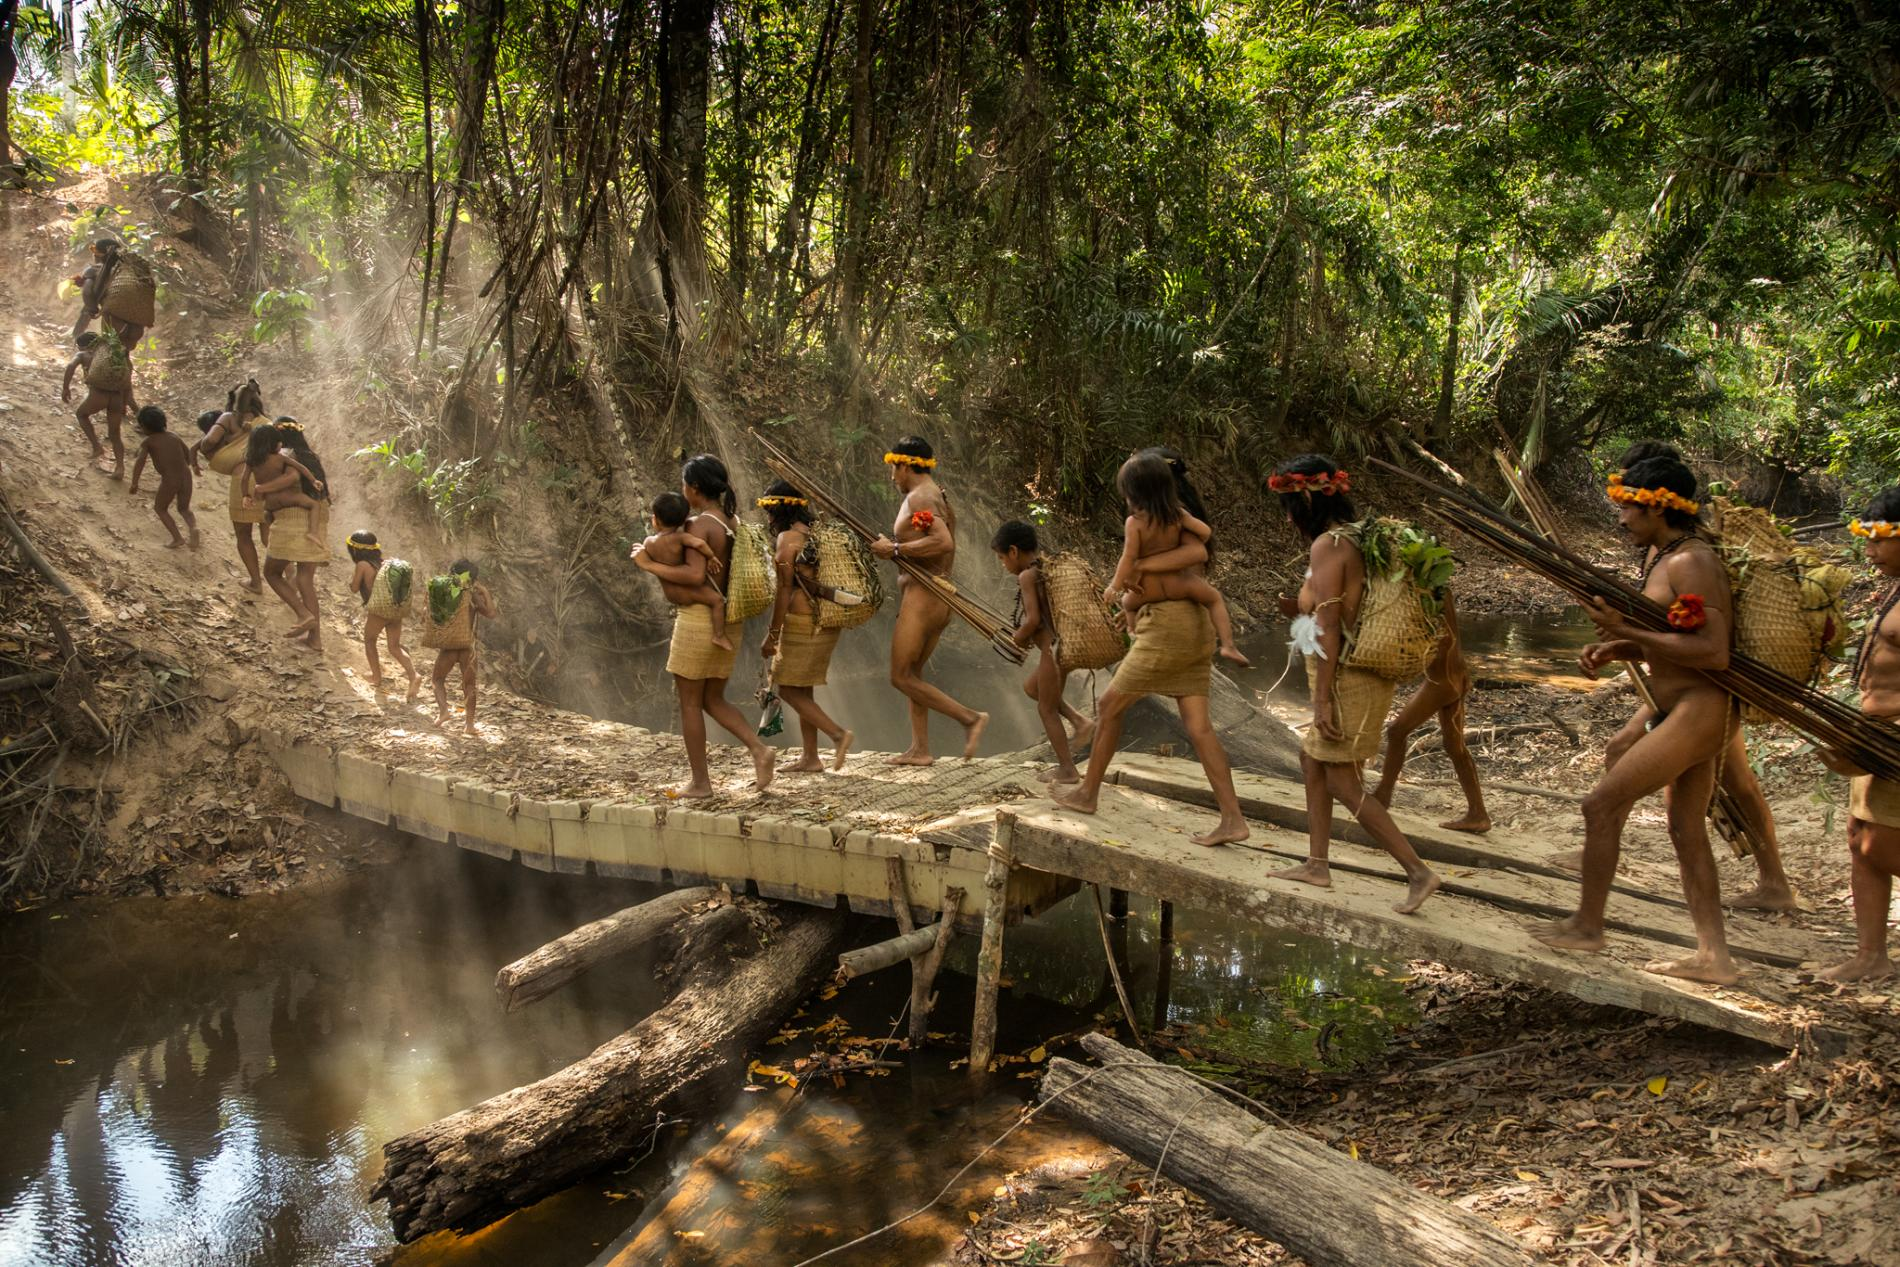 Amazon tribe out hunting. Photo by National Geographic